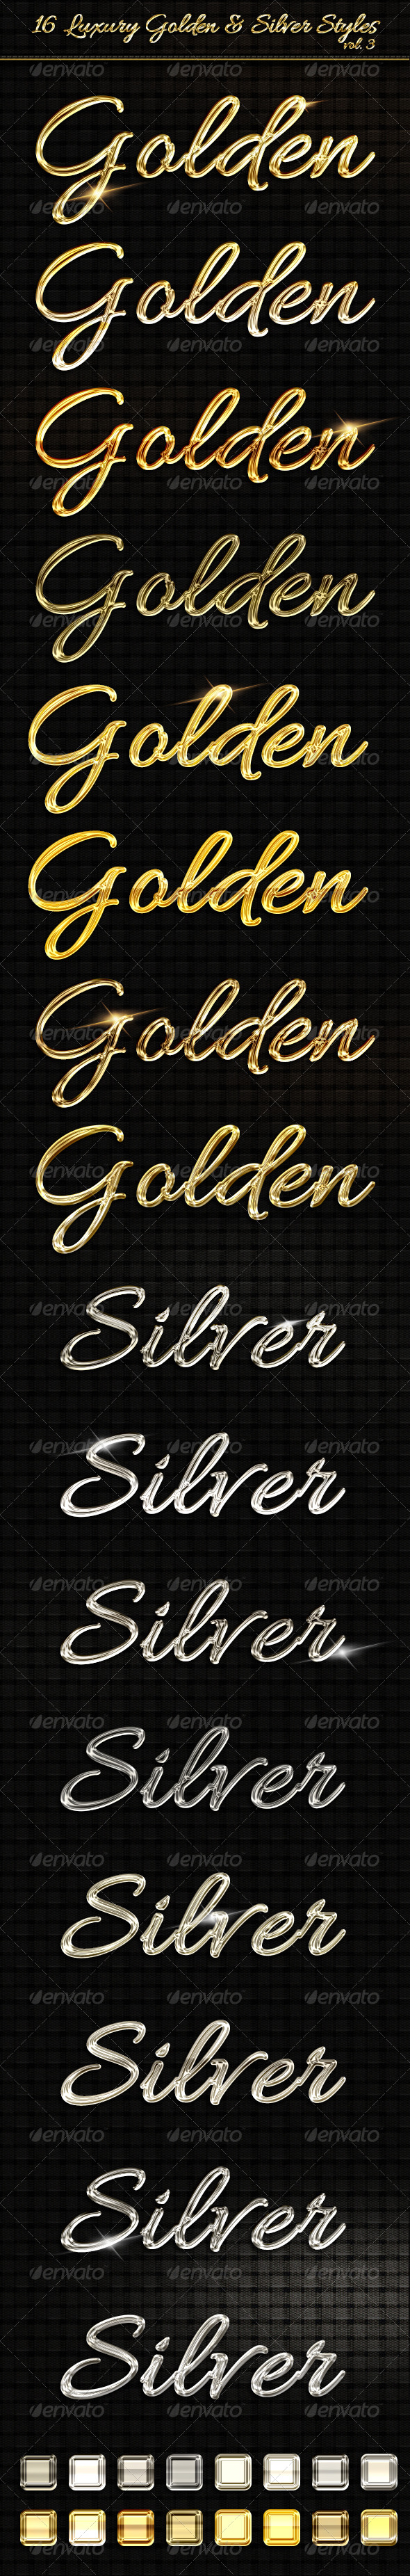 GraphicRiver 16 Luxury Golden & Silver Text Styles vol3 6555616